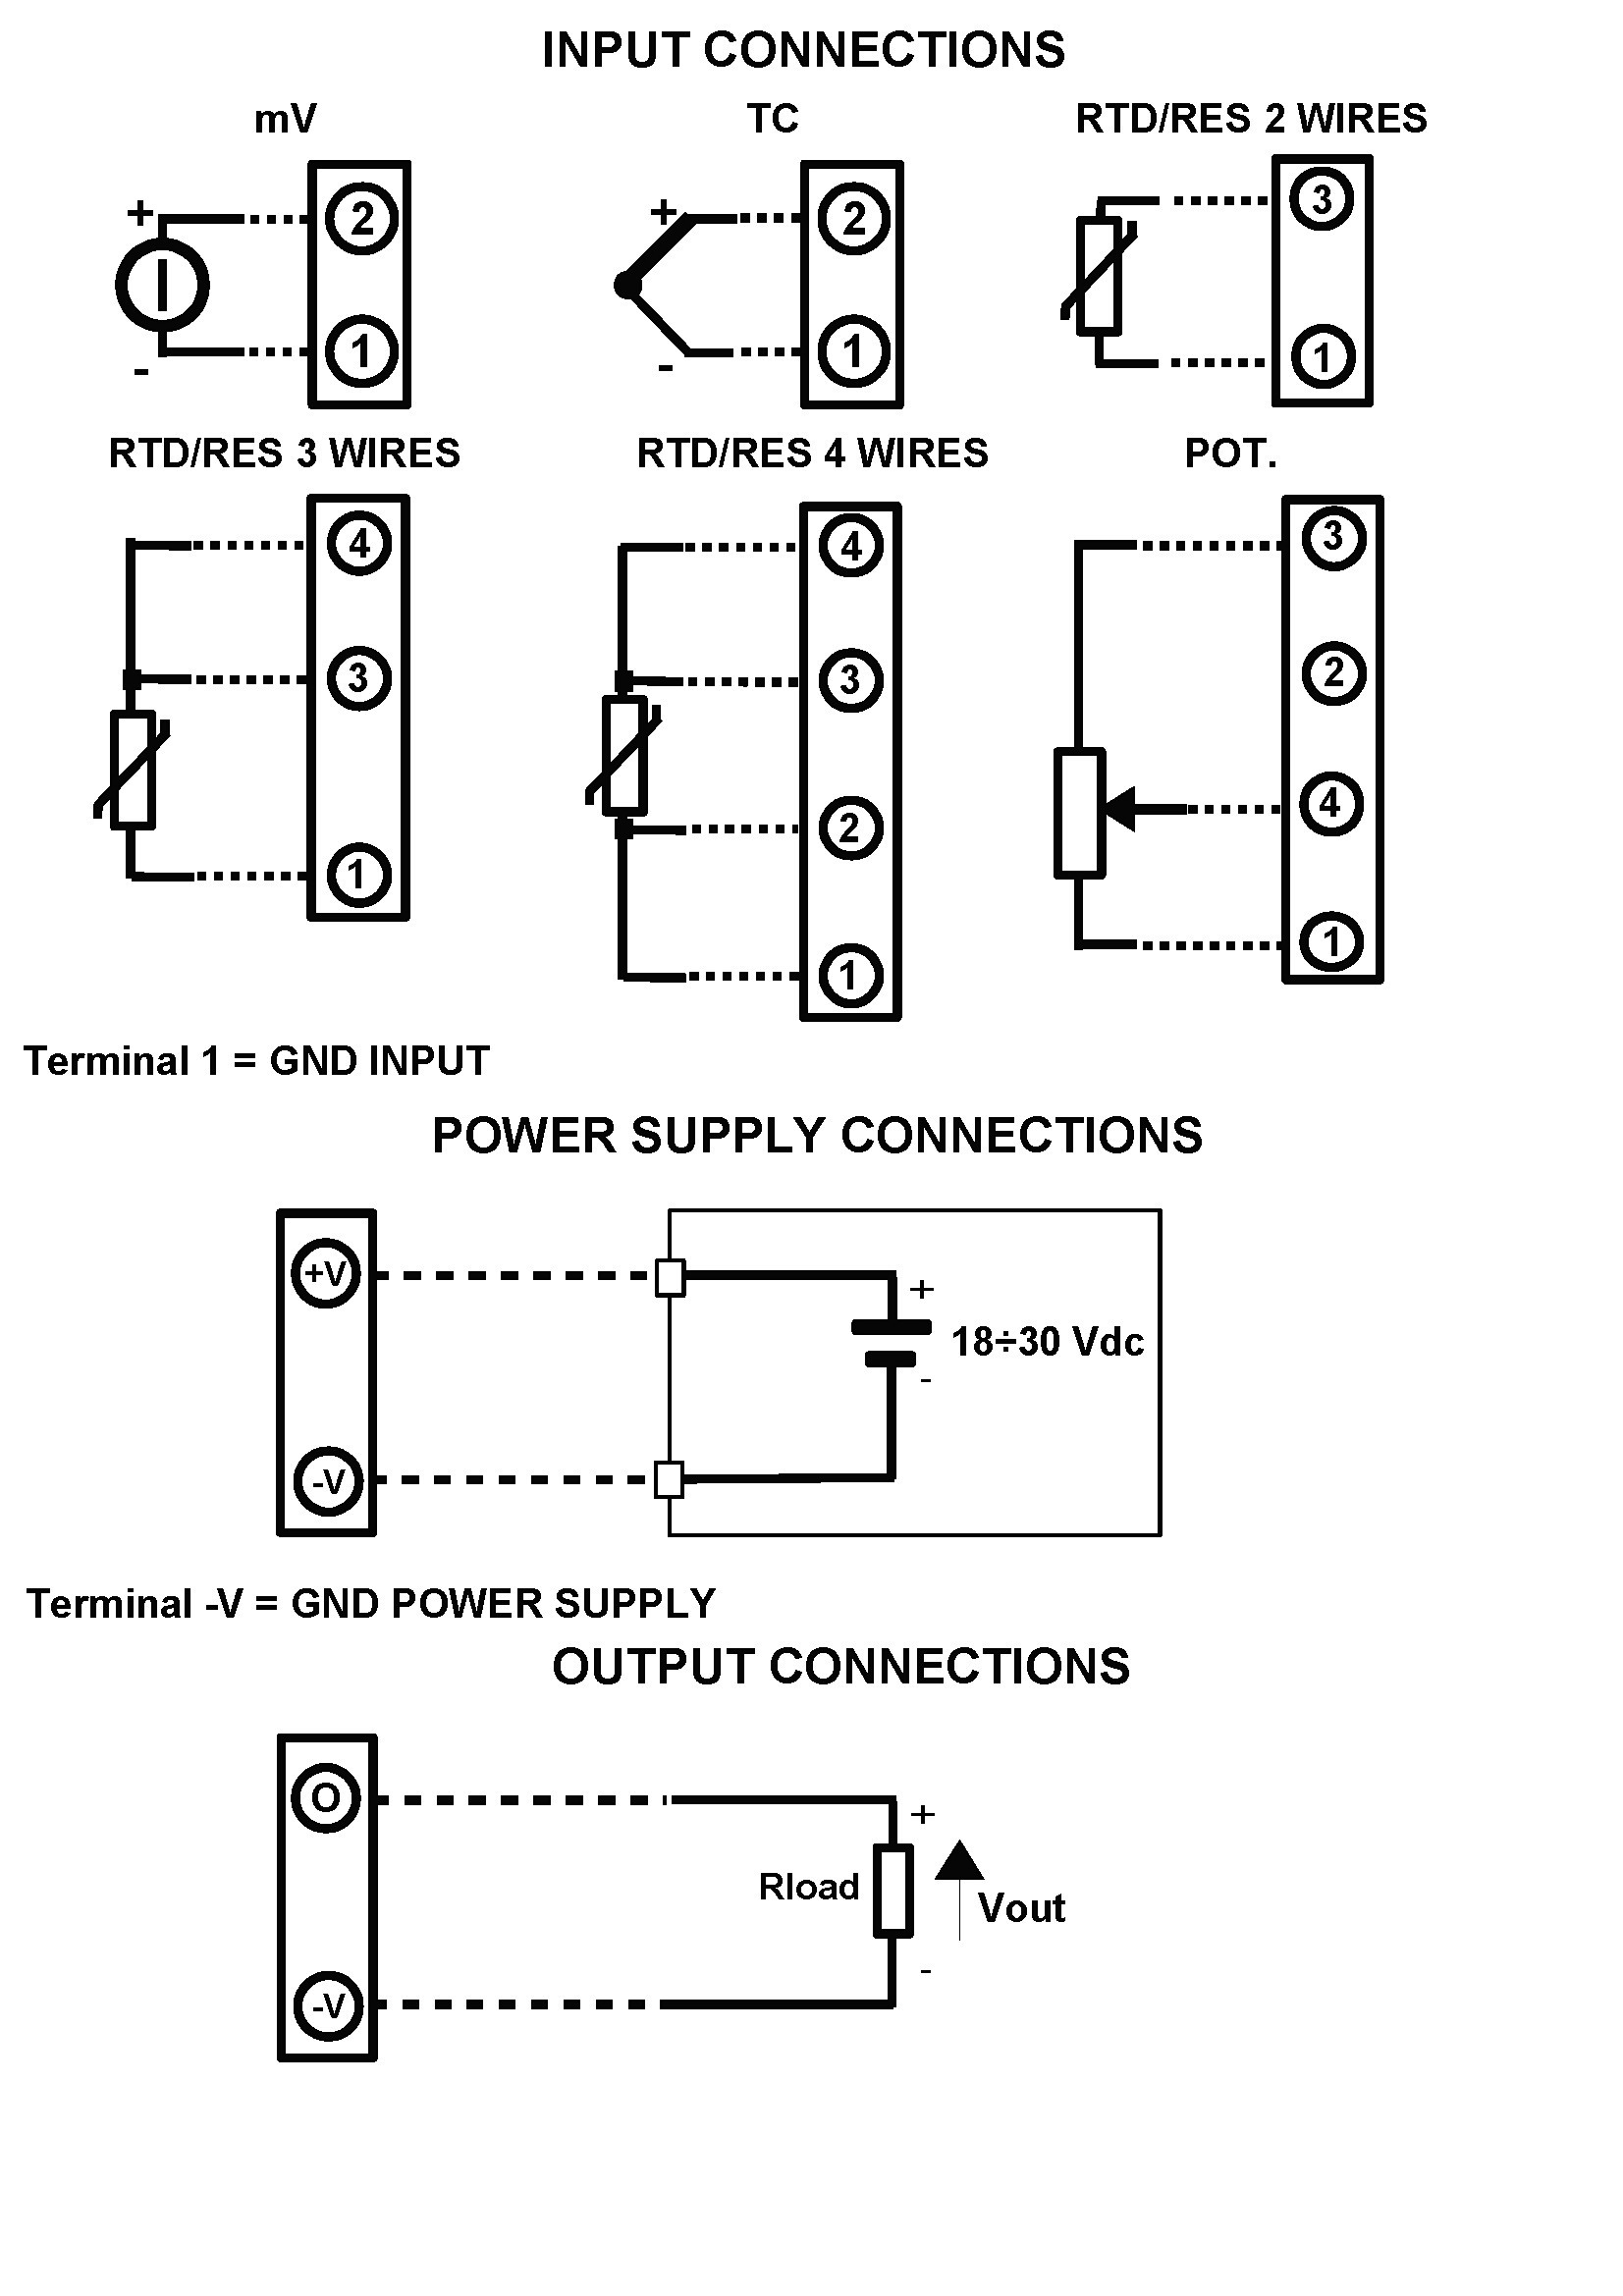 motor rtd wiring diagram Collection-3 Wire Rtd Wiring Diagram Example Exelent 3 Wire Rtd Connection Electrical Circuit Diagram 15-t